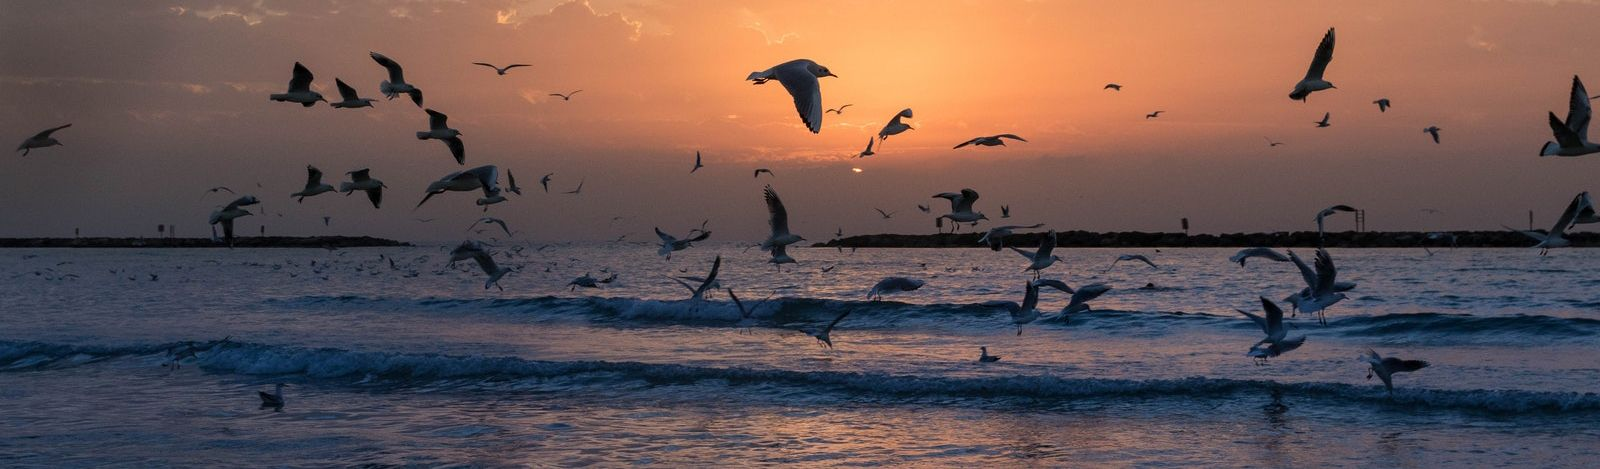 A group of birds flying on the Israeli beach at sunset